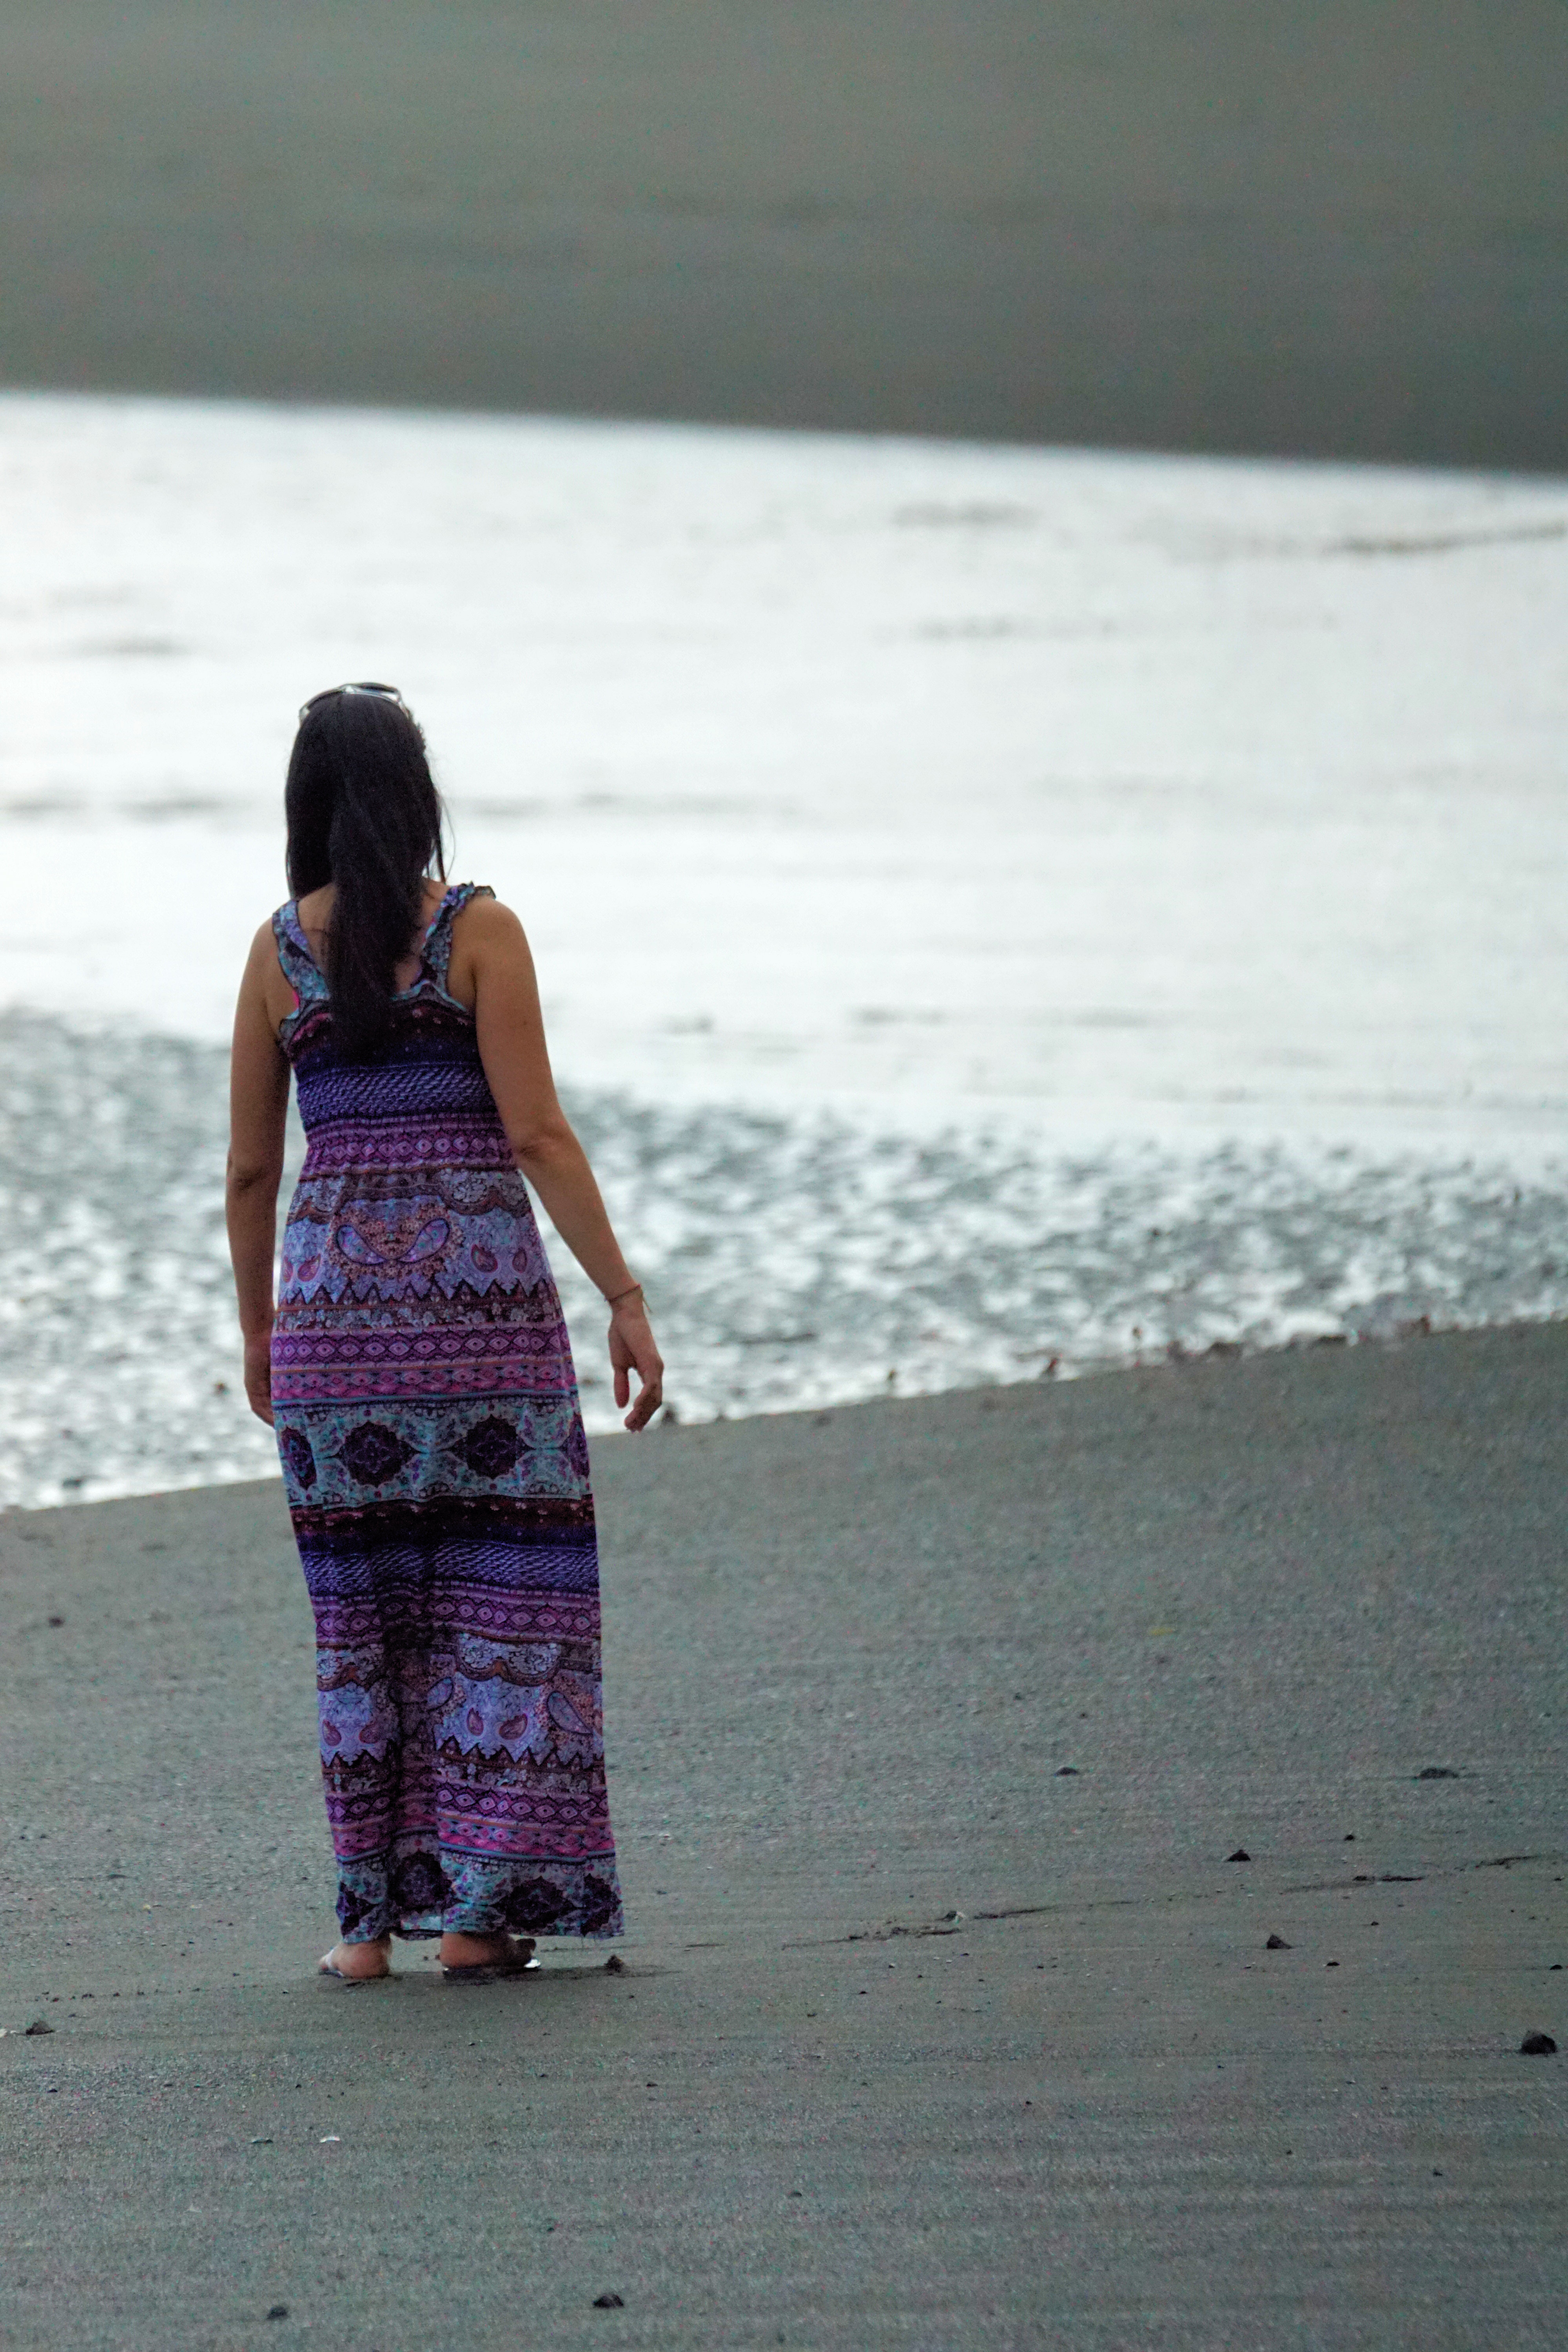 costa rica woman on beach